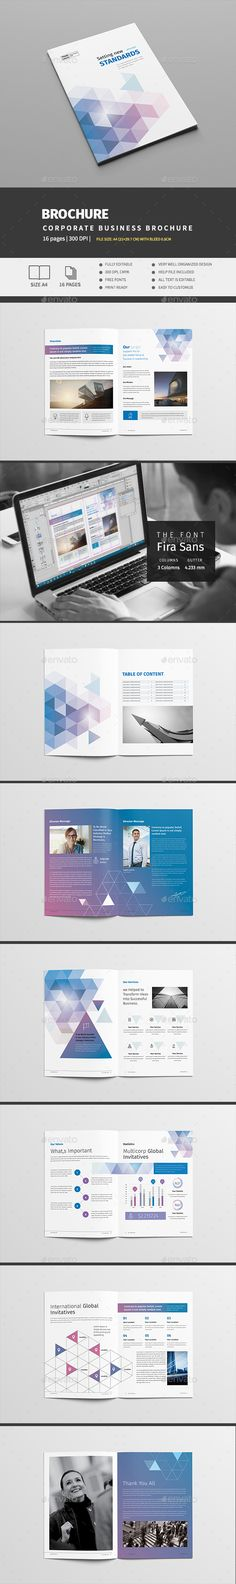 Corporate business brochure 16 pages a4 brochures business corporate business brochure 16 pages a4 brochures business brochure and corporate business saigontimesfo